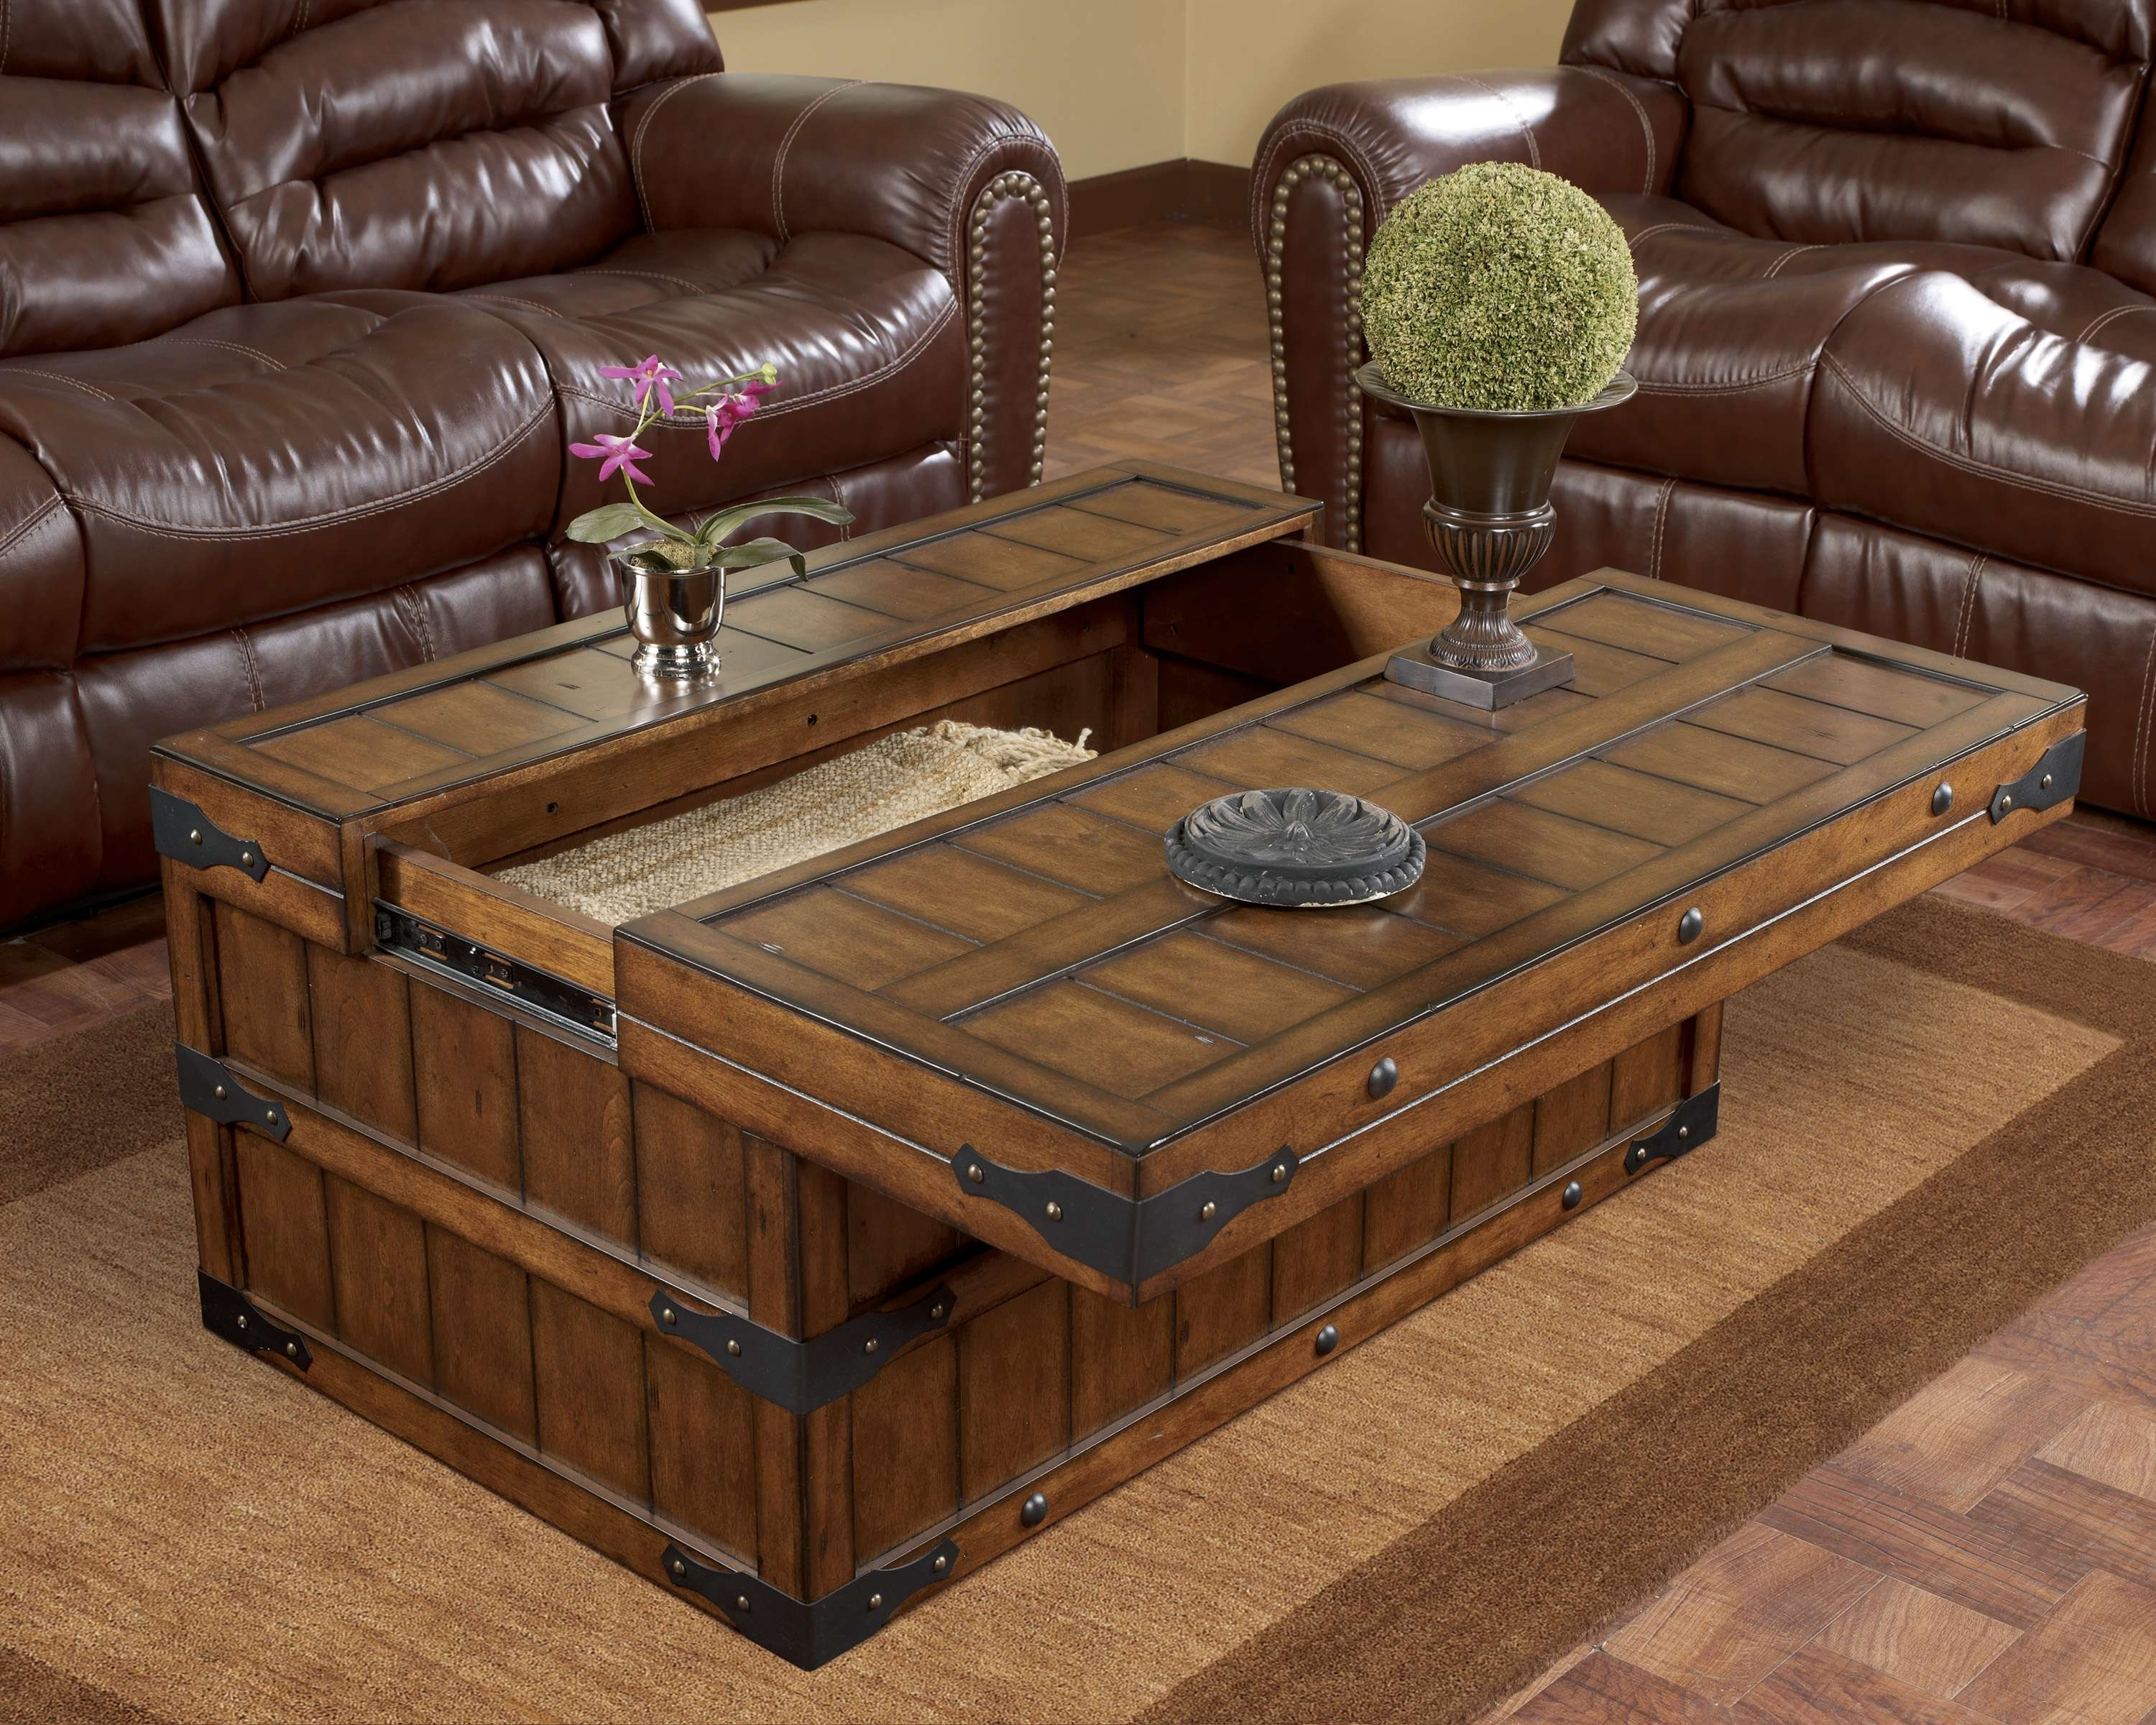 Coffee Table : Magnificent Farmhouse Style Coffee Table Reclaimed Throughout Most Recently Released Antique Rustic Coffee Tables (View 8 of 20)